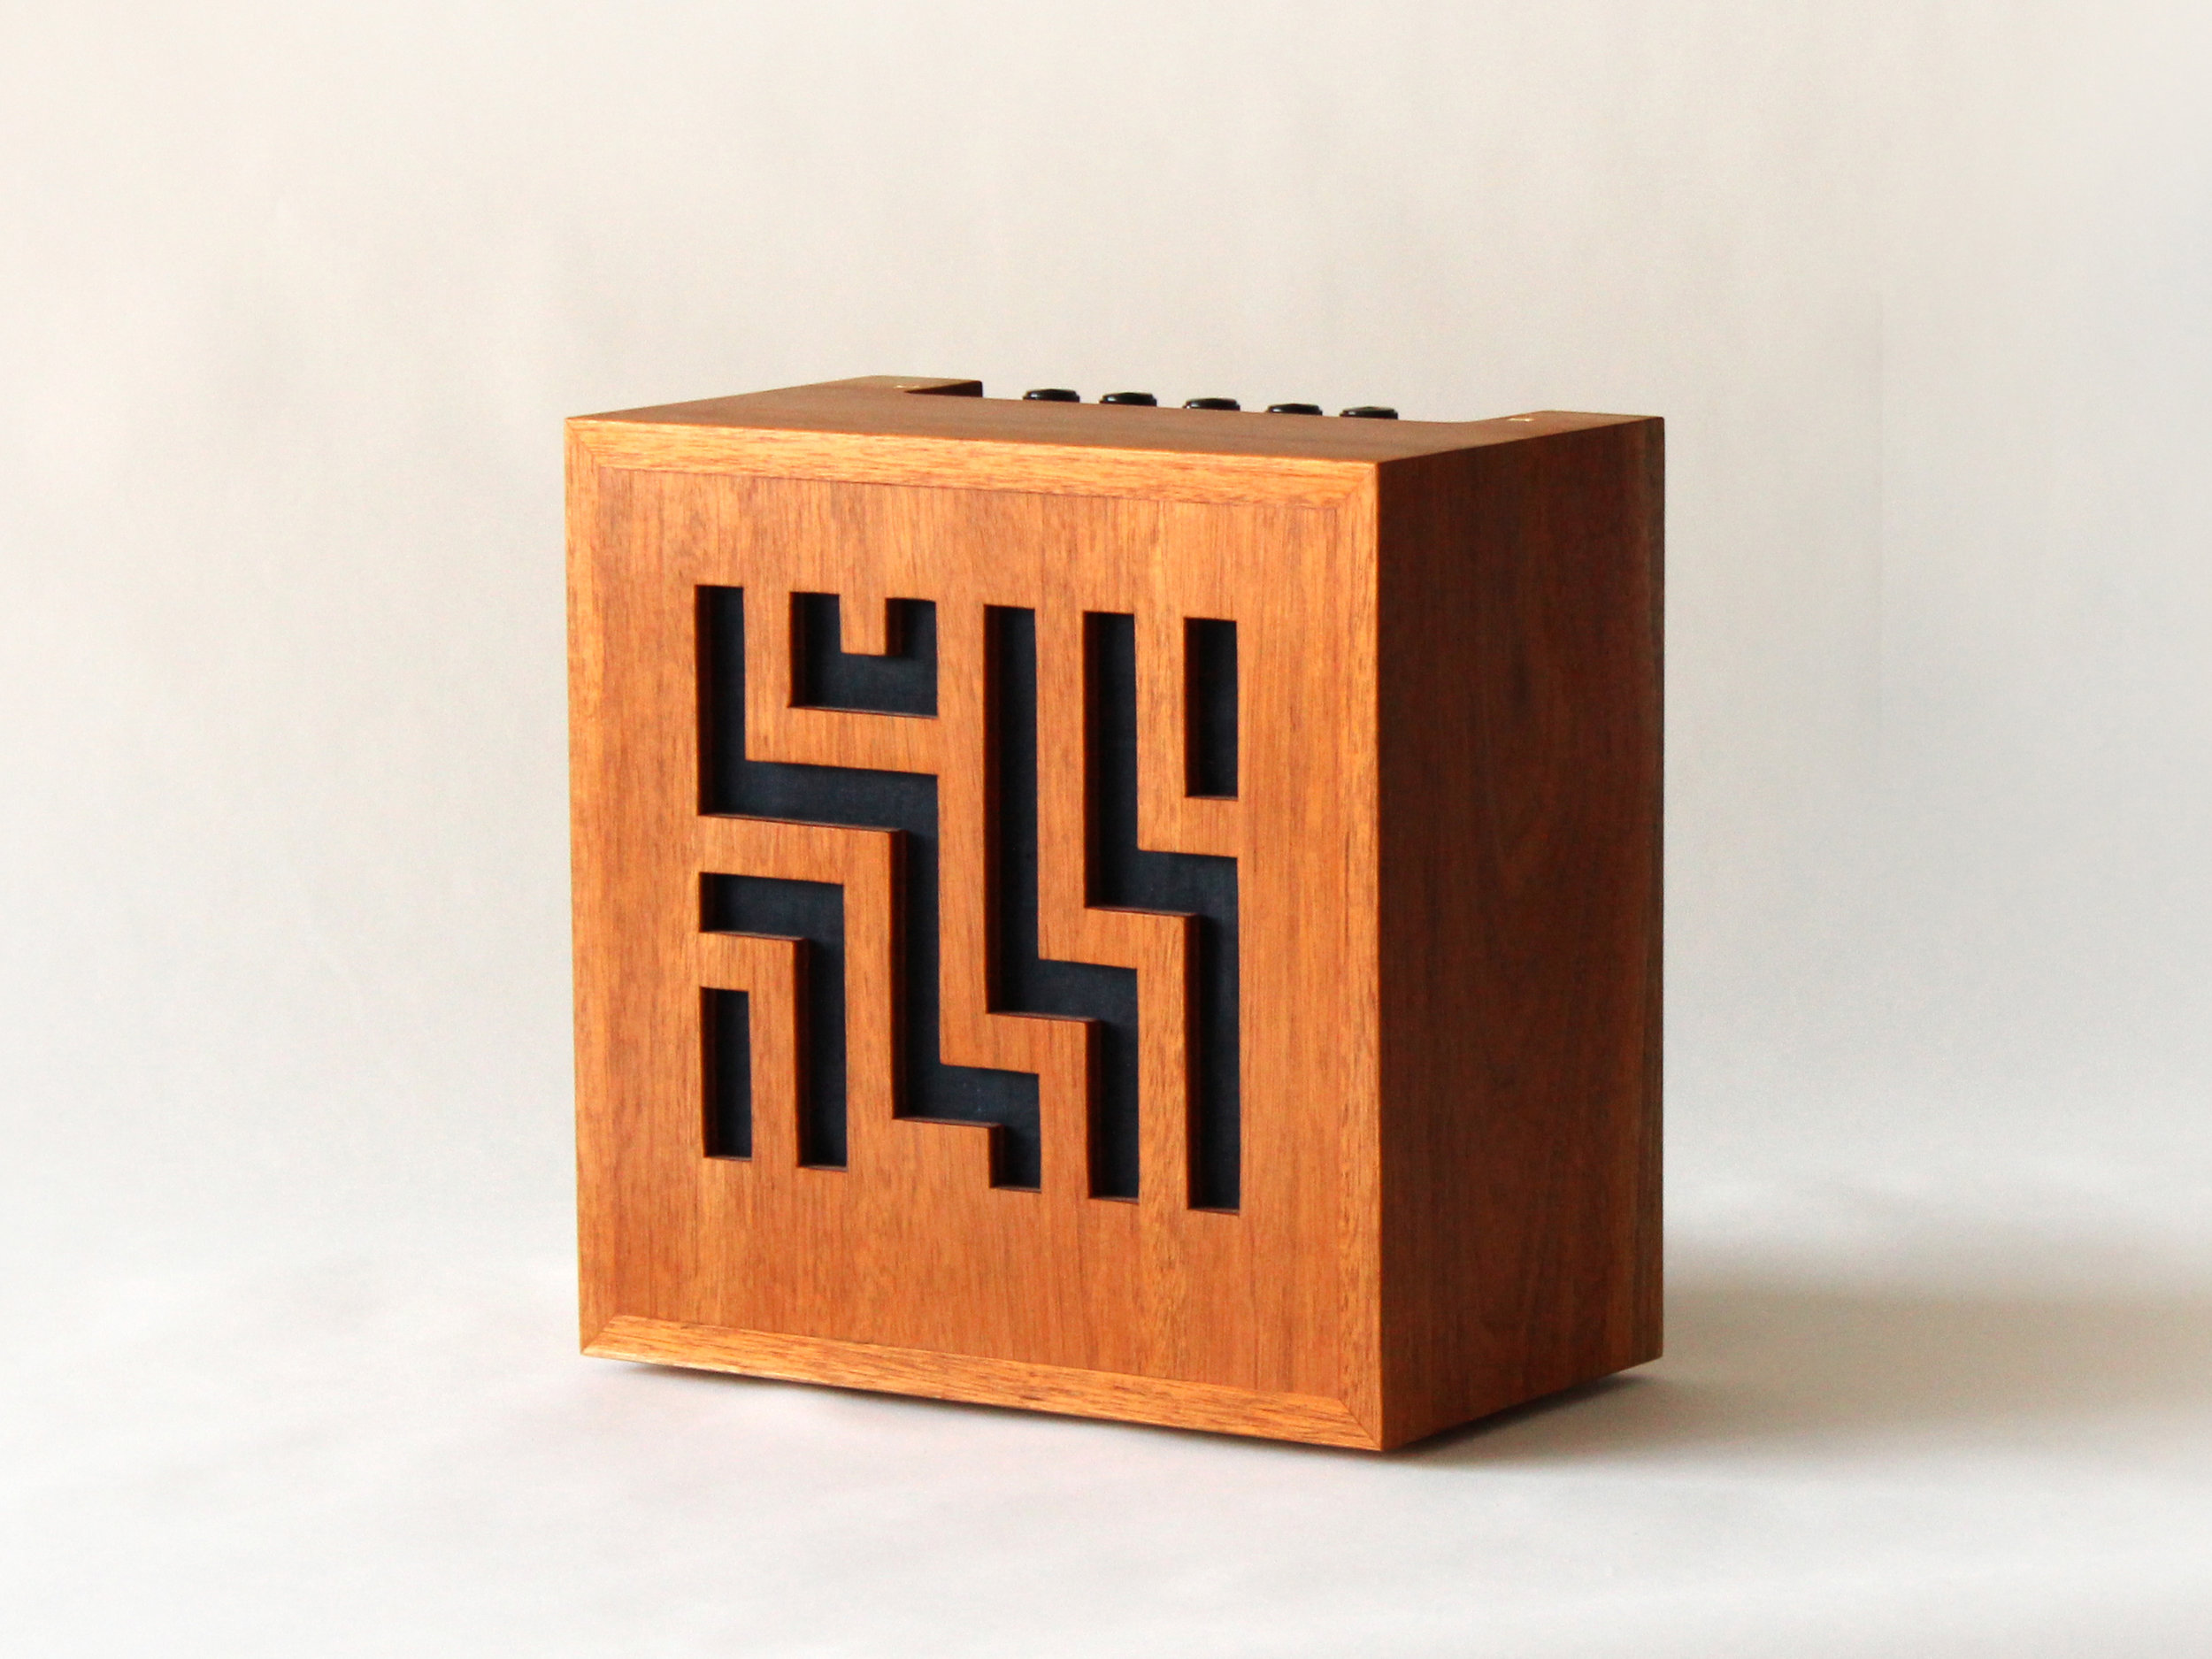 custom amp, design en bois, design Montréal, solid wood, Emma Senft, furniture